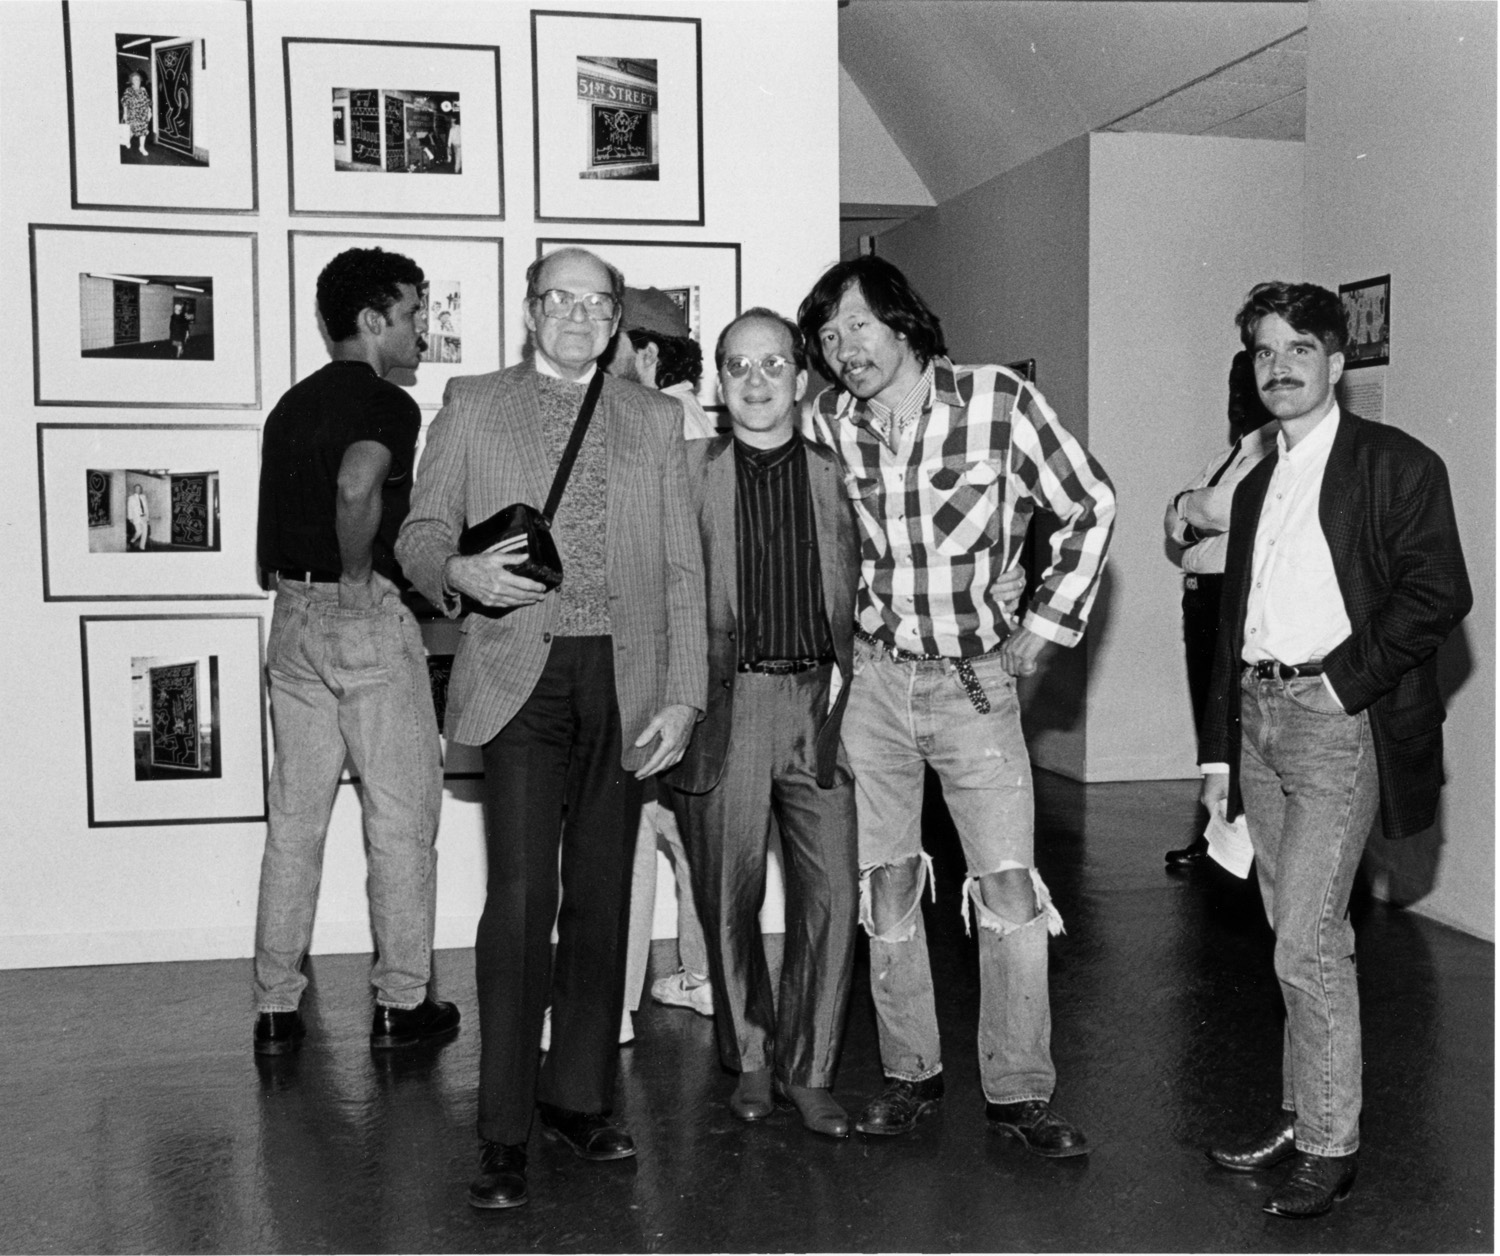 Collector Norman Dubrow (left), guest curator Barry Blinderman (center), and Martin Wong (right) at the opening of  Keith Haring Future Primeval , 1990